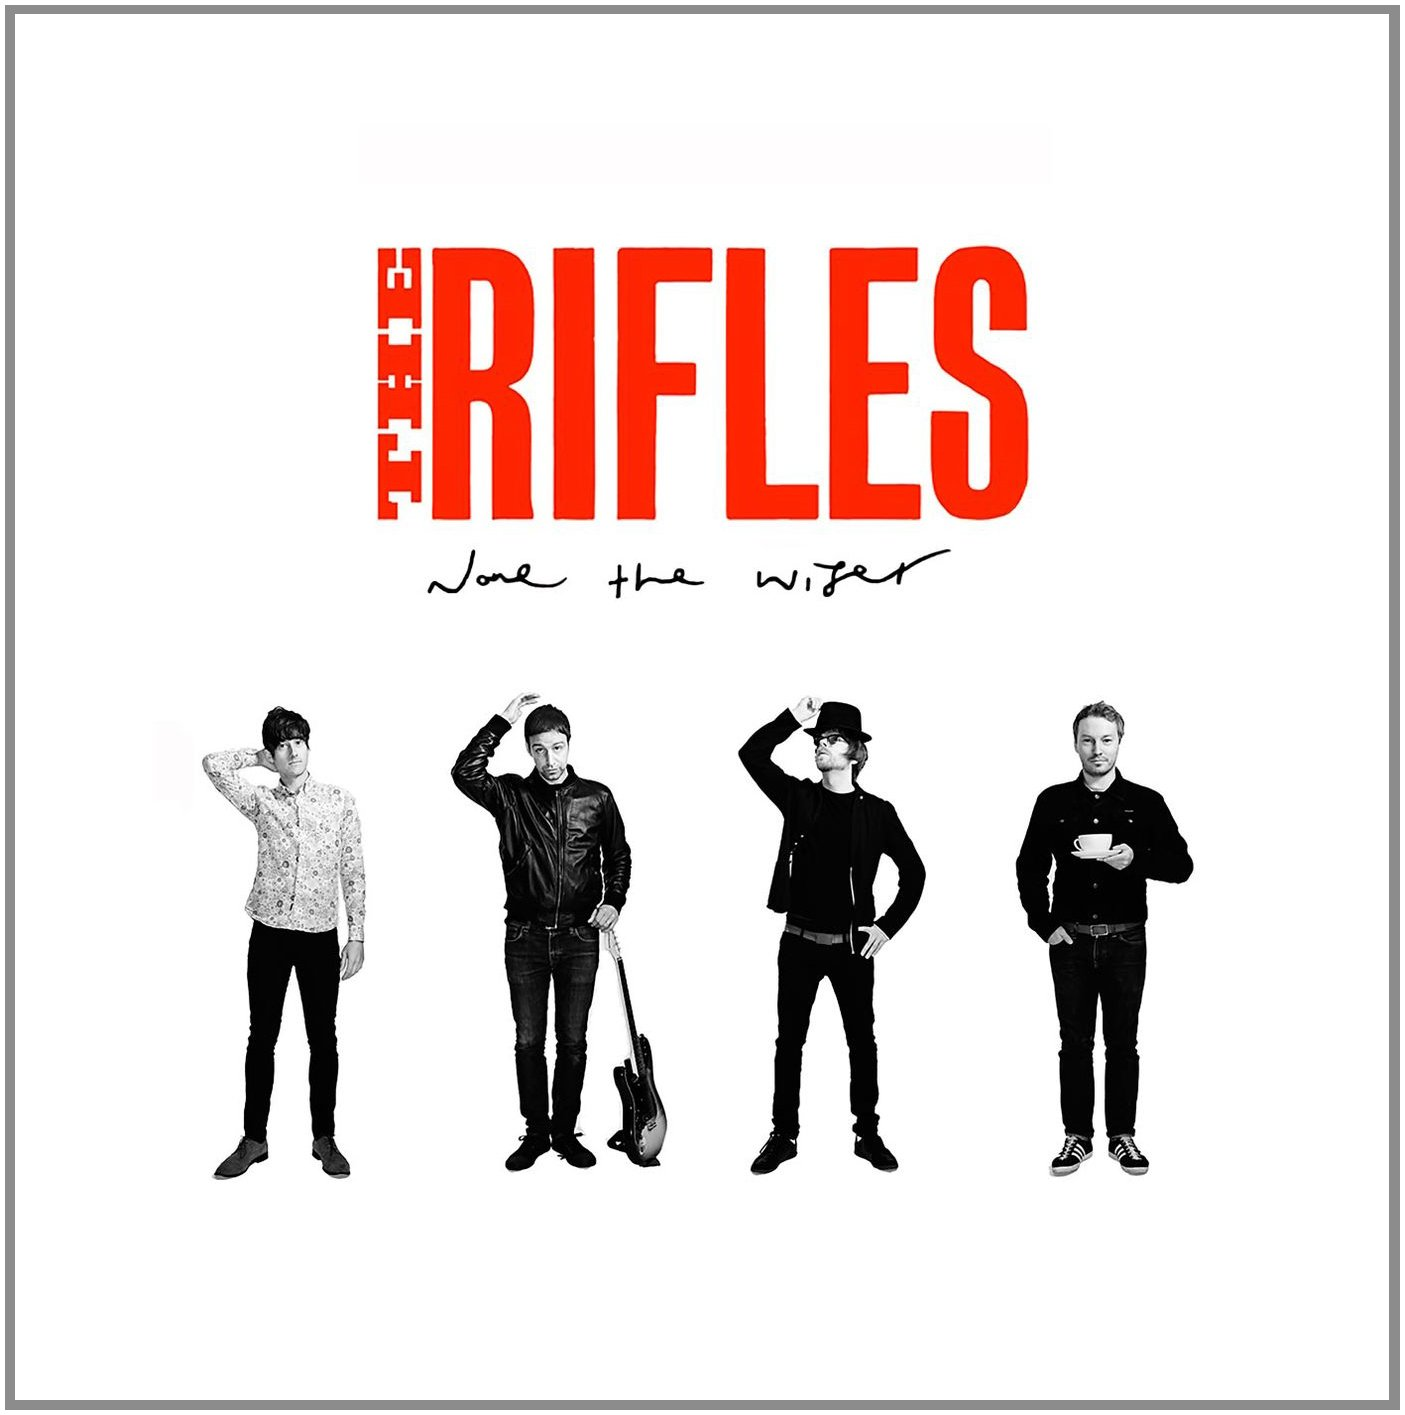 My Collections The Rifles